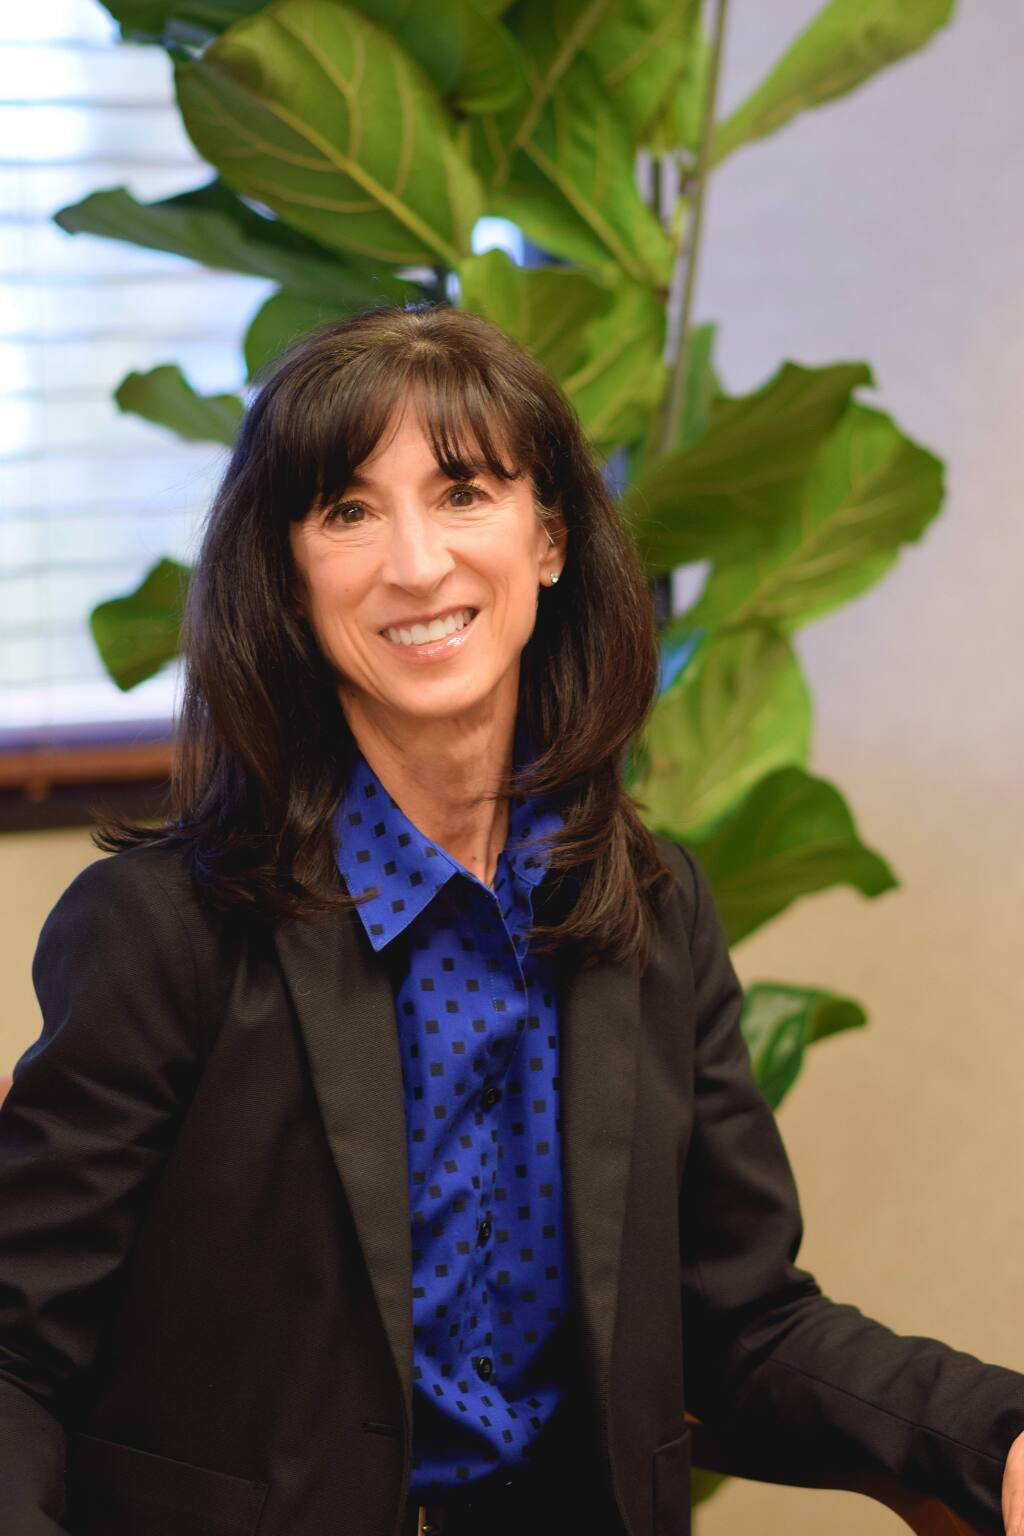 Rose M. Zoia, attorney at Anderson Zeigler, P.C.